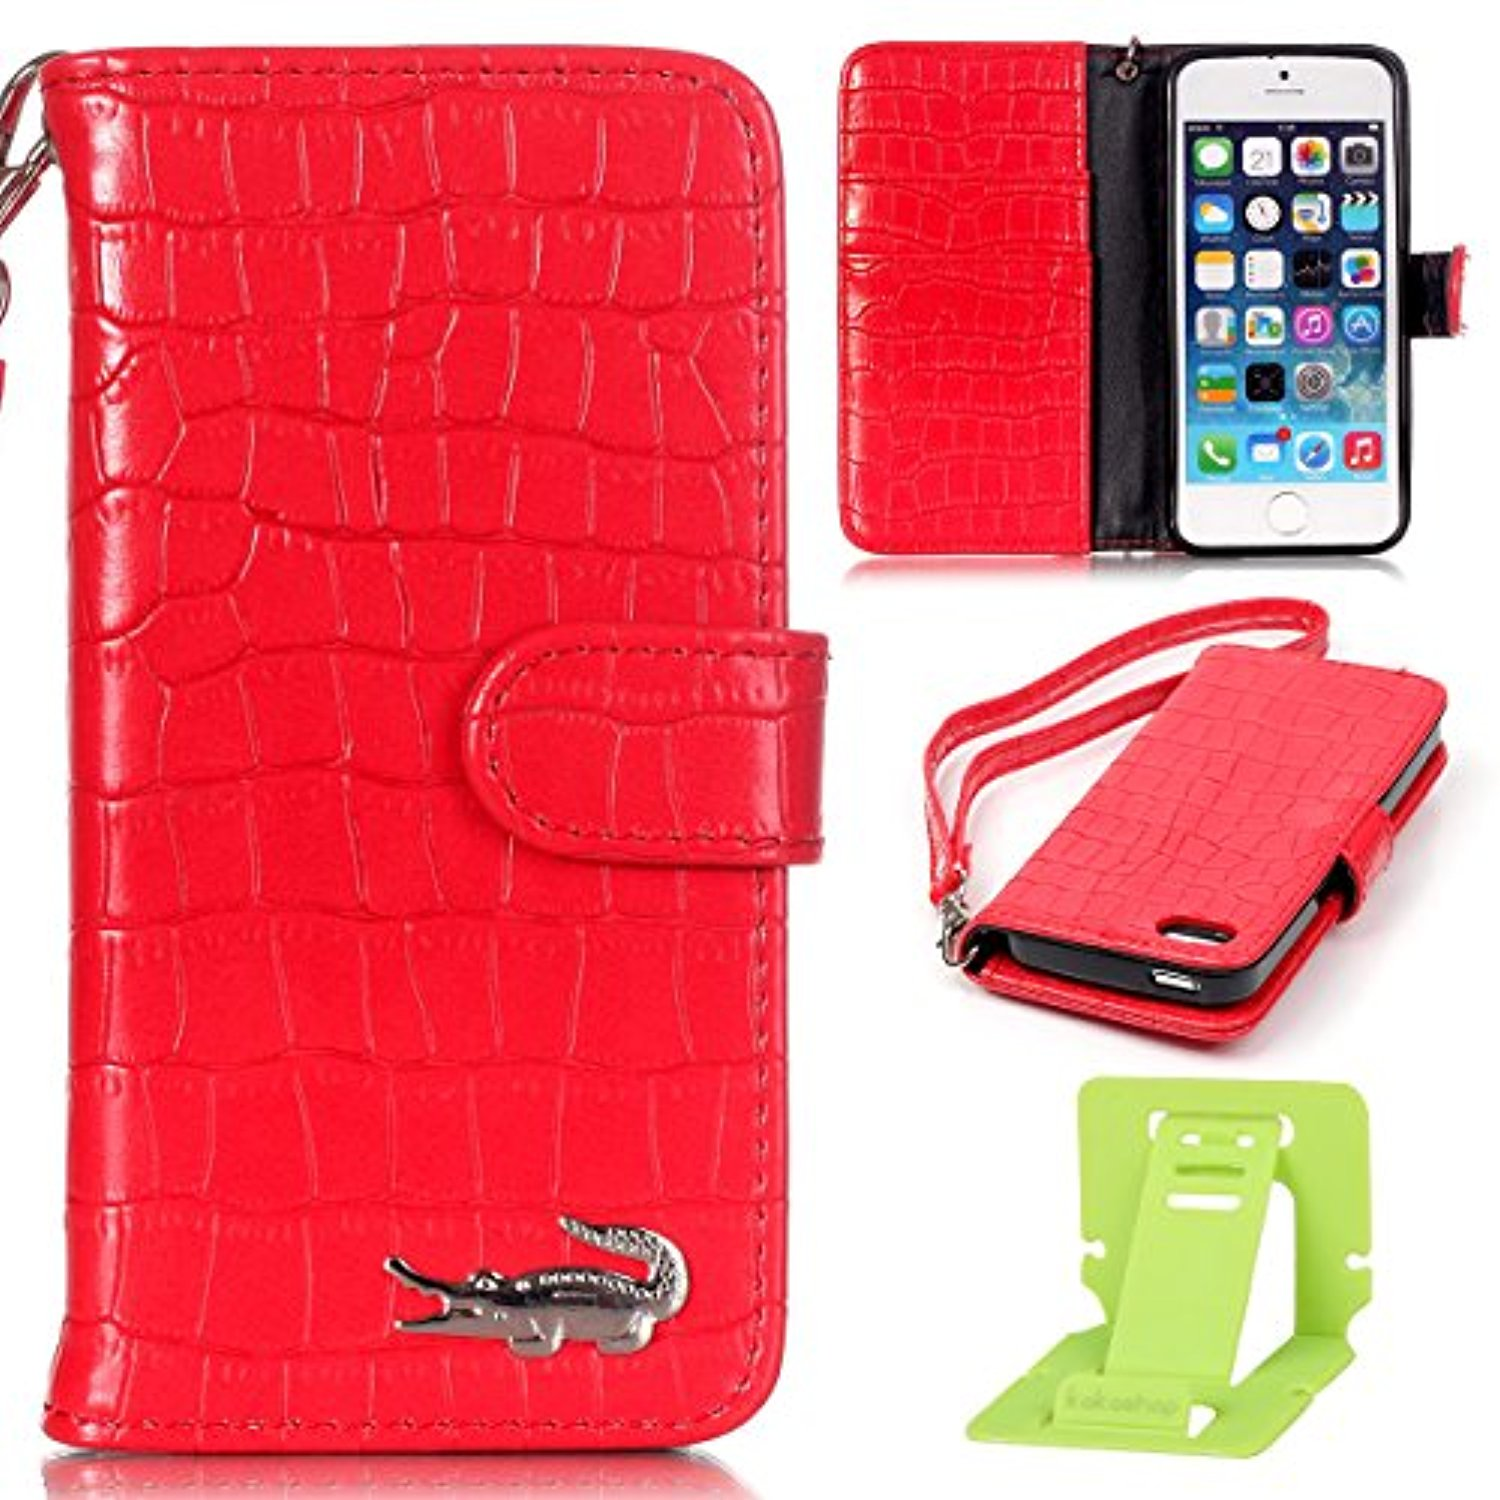 Couqe etui pour iphone se iphone 5s coque rabat iphone 5 for Etui housse iphone 5